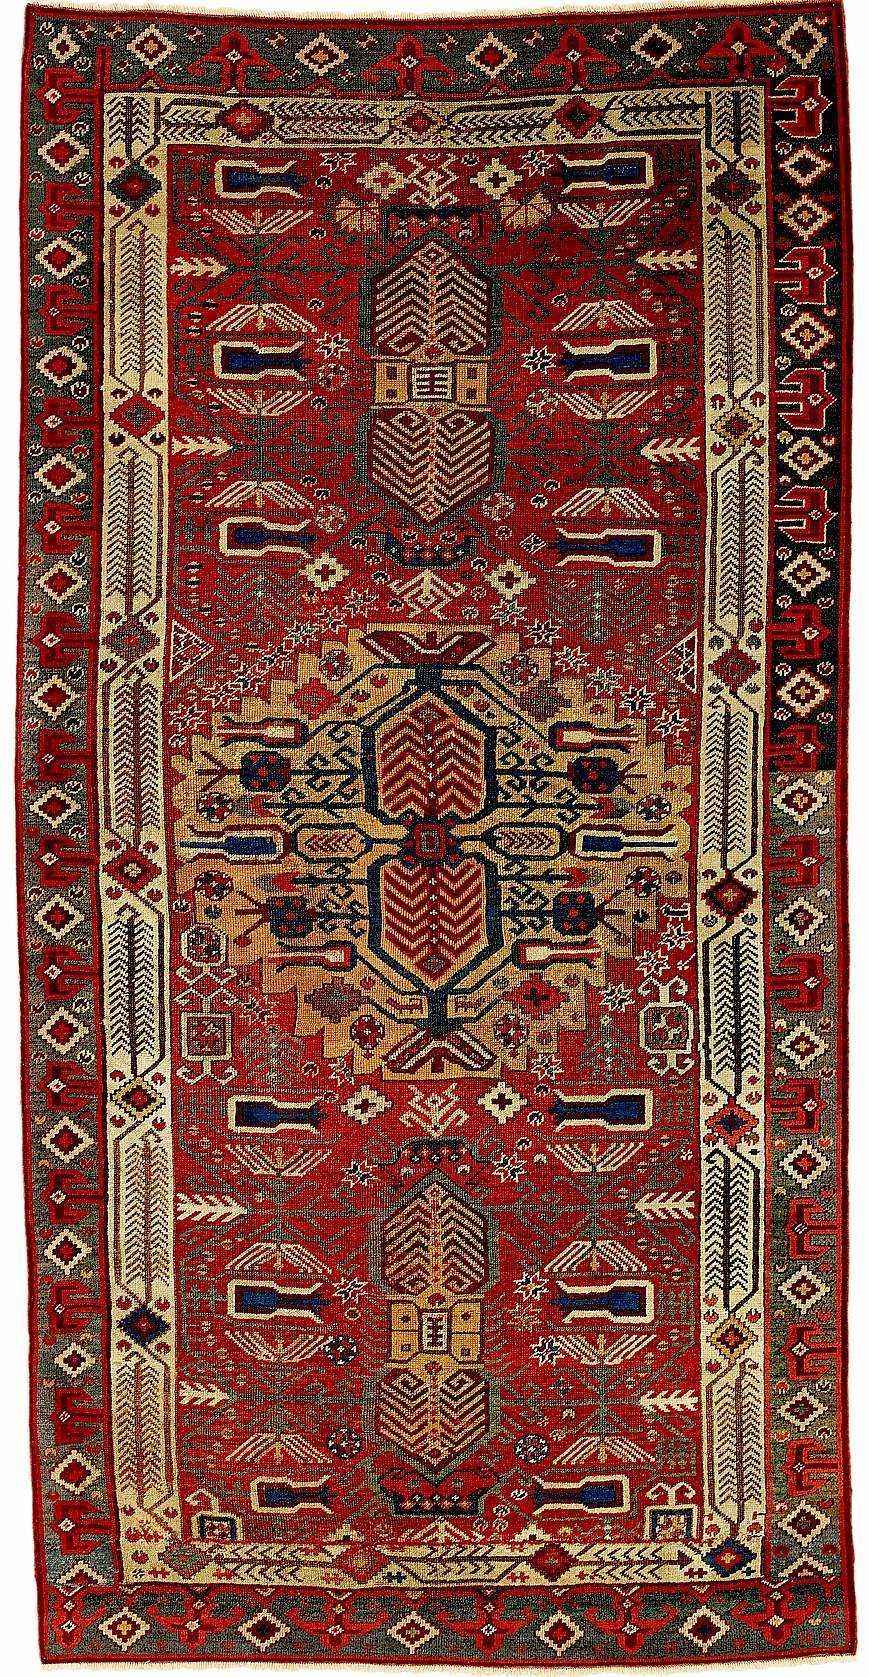 oriental carpets turkish rugs karapinar carpet fragment 17th century oriental carpets. Black Bedroom Furniture Sets. Home Design Ideas